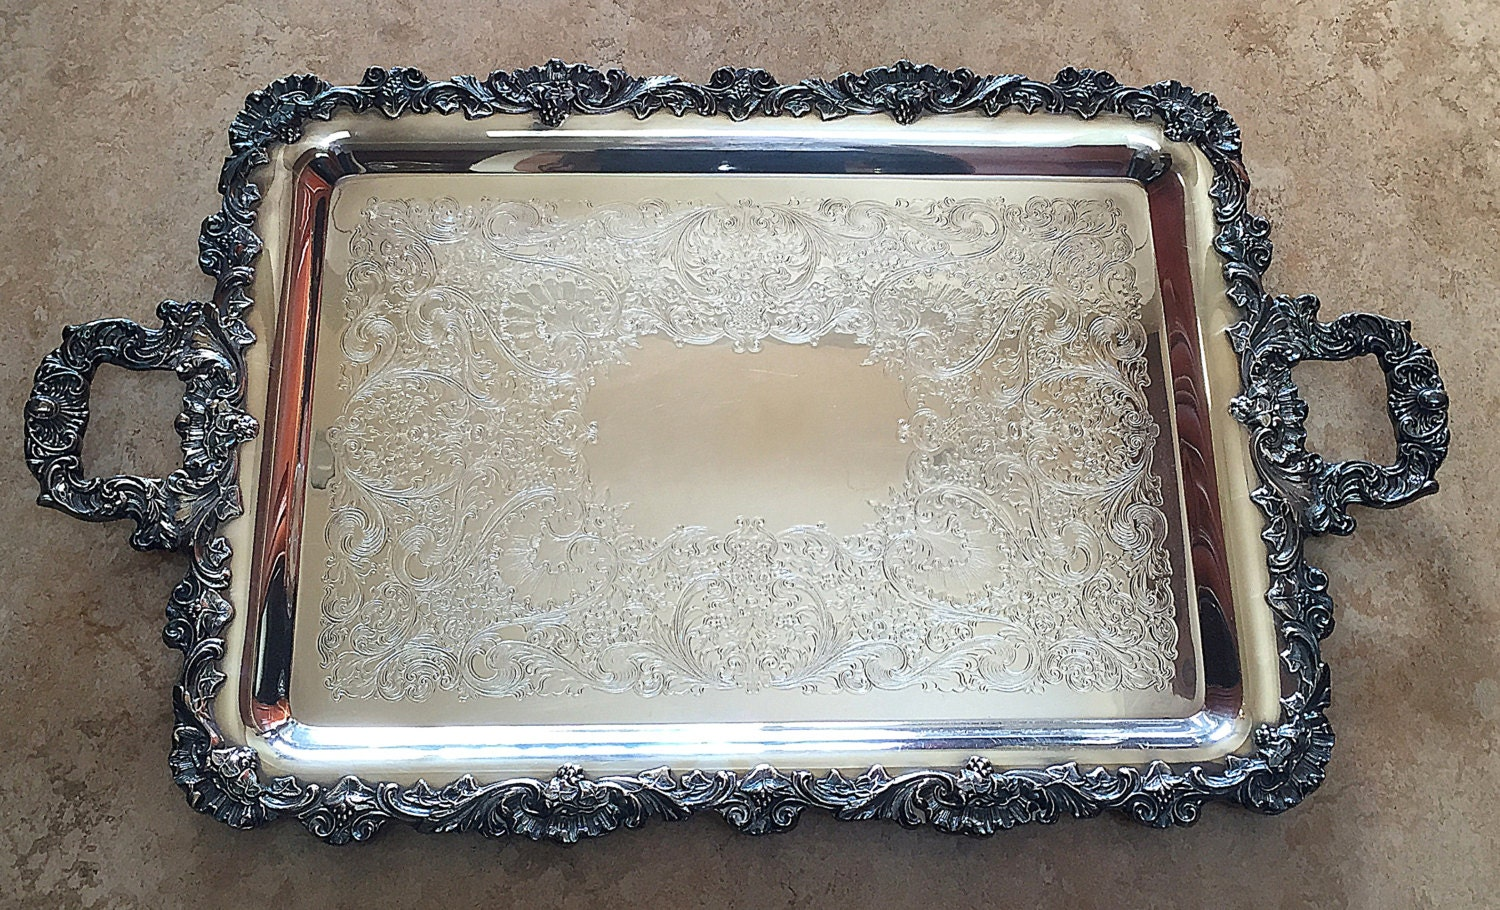 dating wilcox silver plate